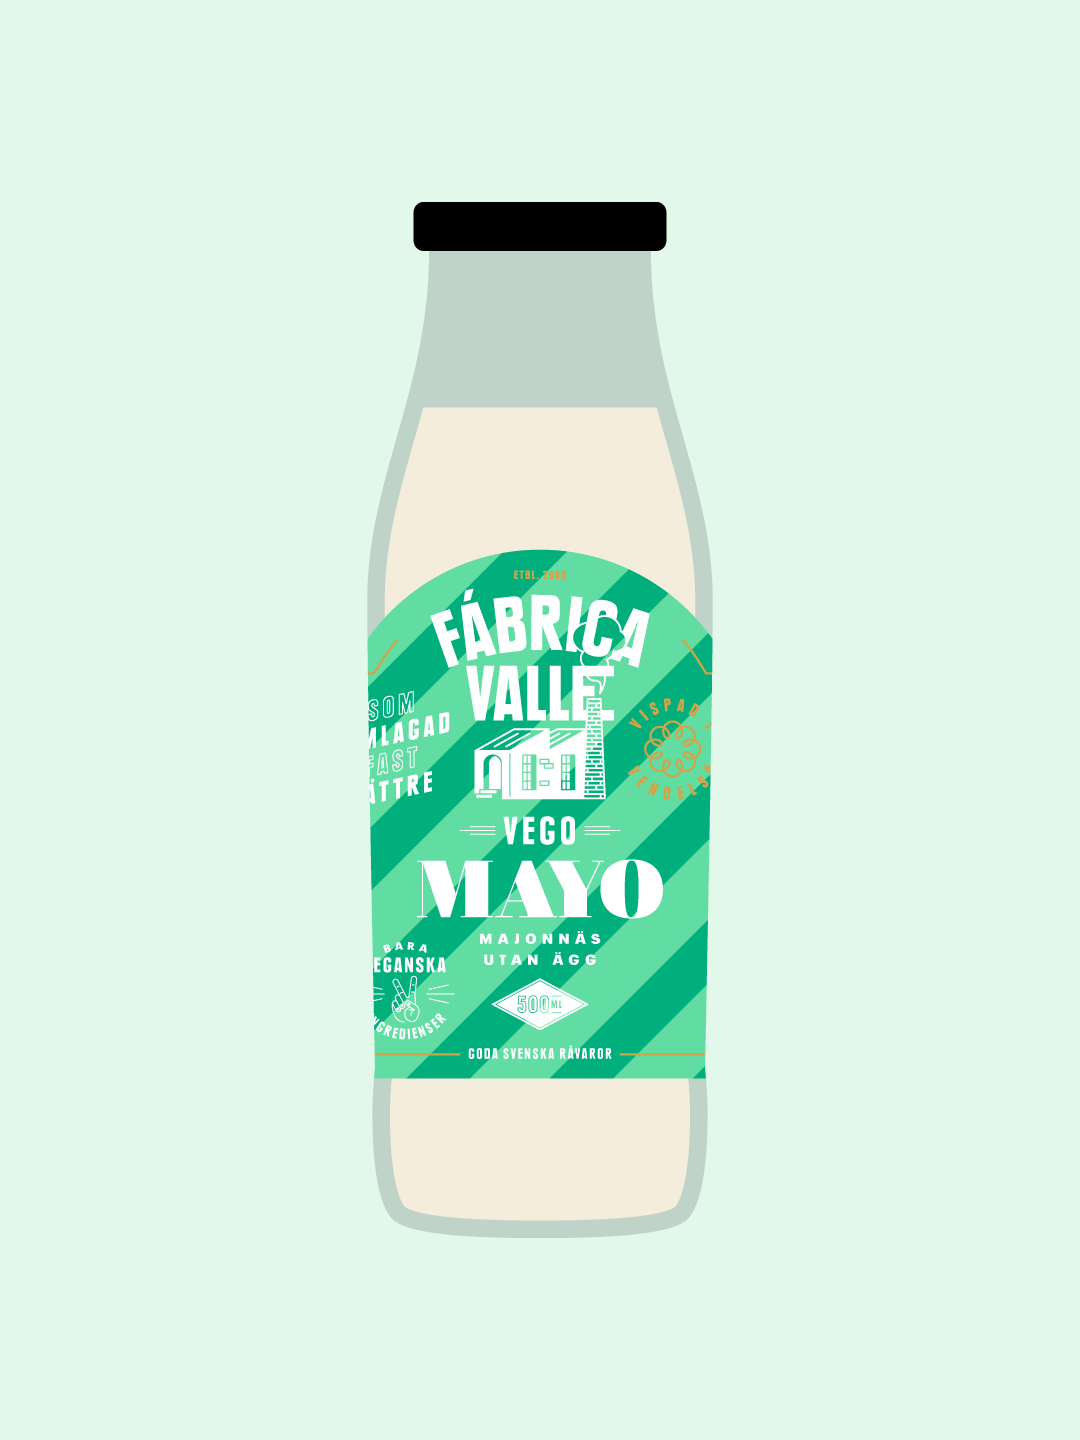 Fabrica_Valle_Illustration_Mayo_Vego_1080x1440px_72ppi.png